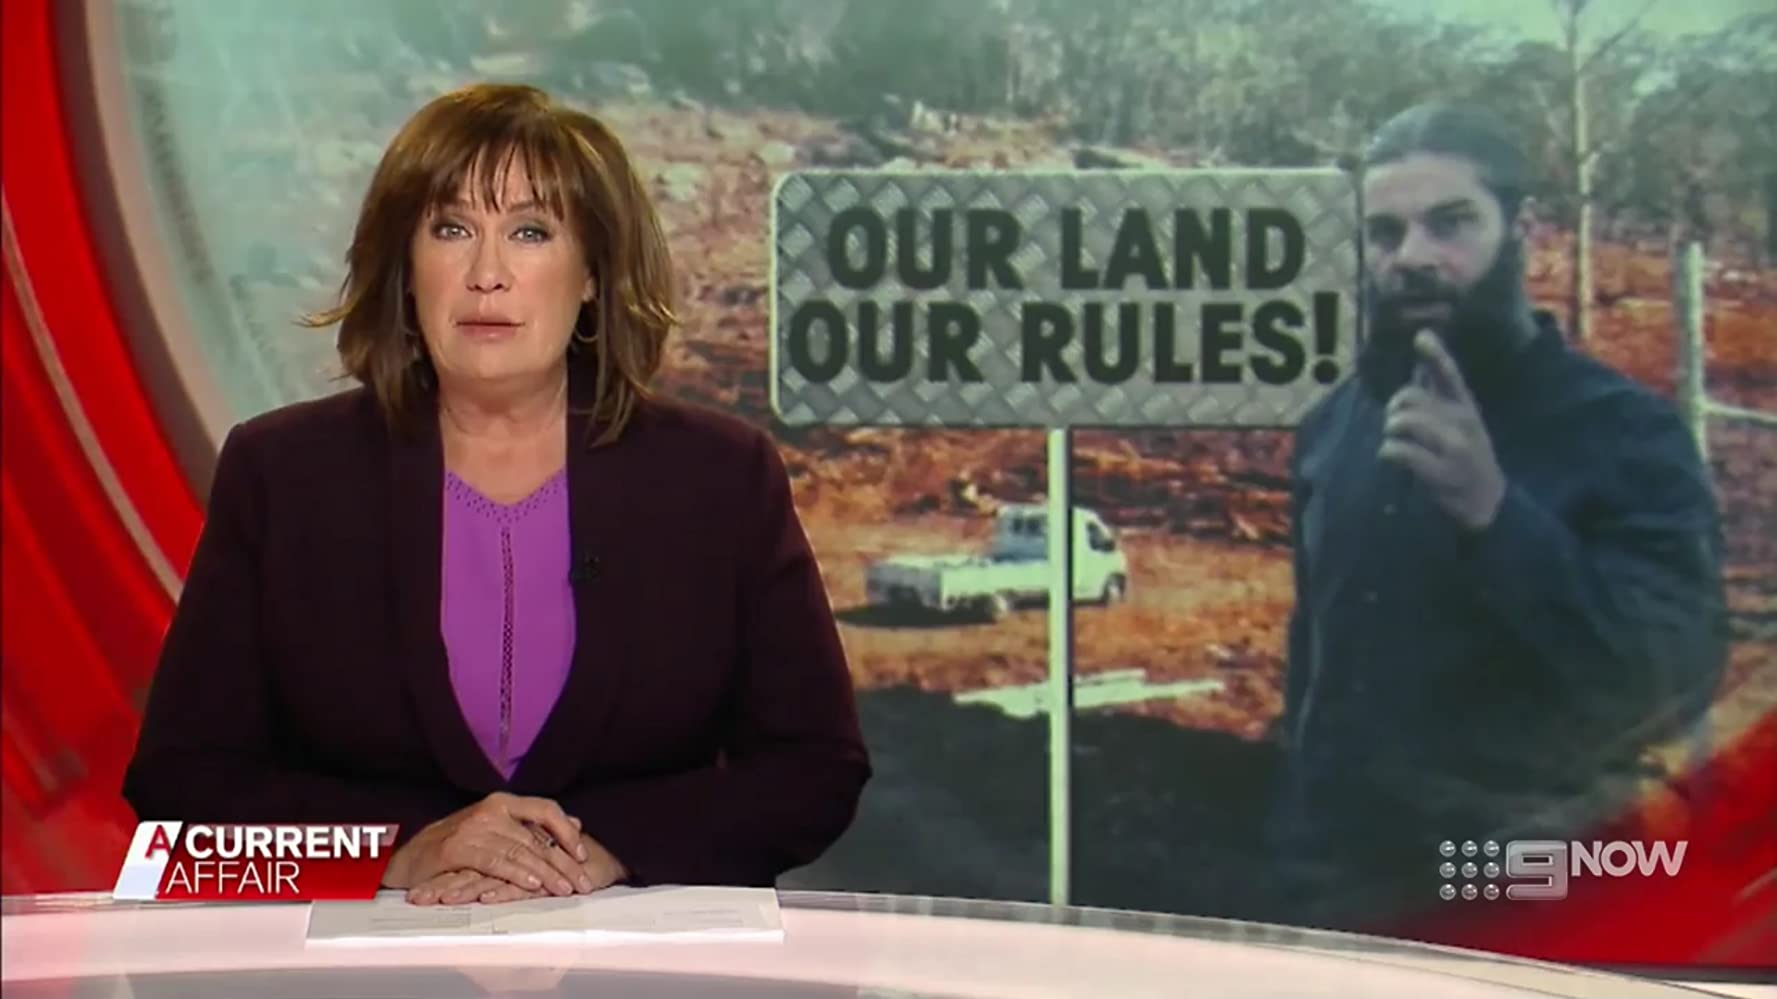 Our Land, Our Rules! (2018)